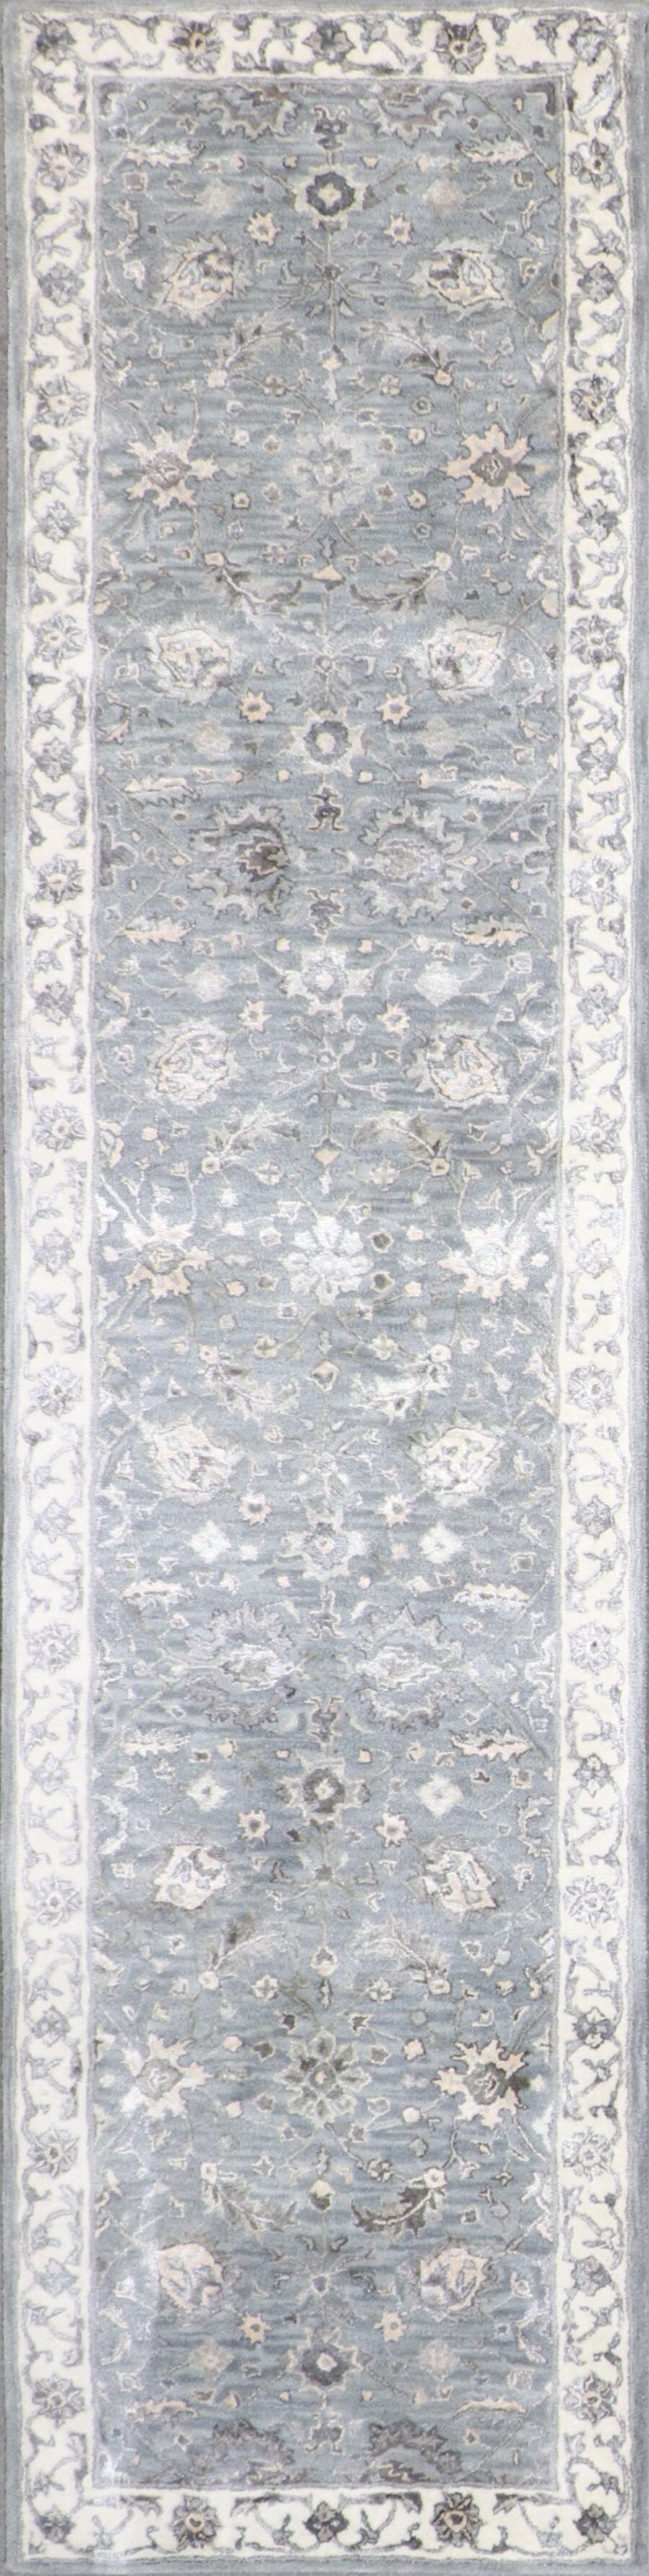 3'x12' Decorative Vintage Wool & Silk Hand-Tufted Rug - Direct Rug Import   Rugs in Chicago, Indiana,South Bend,Granger